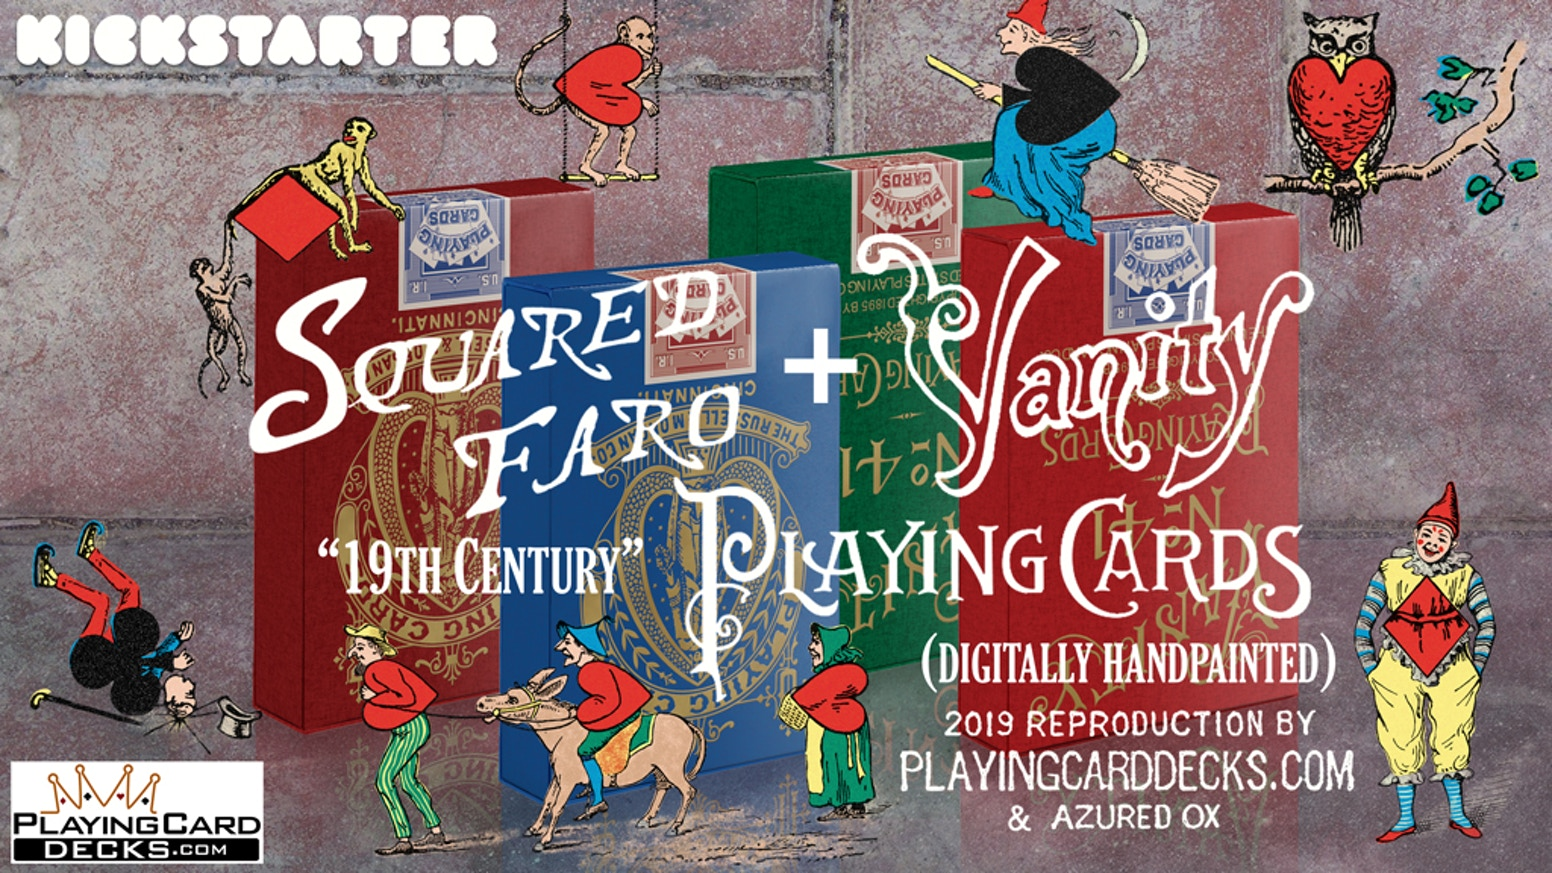 Limited Edition Sets Printed By USPCC - Art Has Been Digitally Hand Painted From Scratch Based On The Original Decks